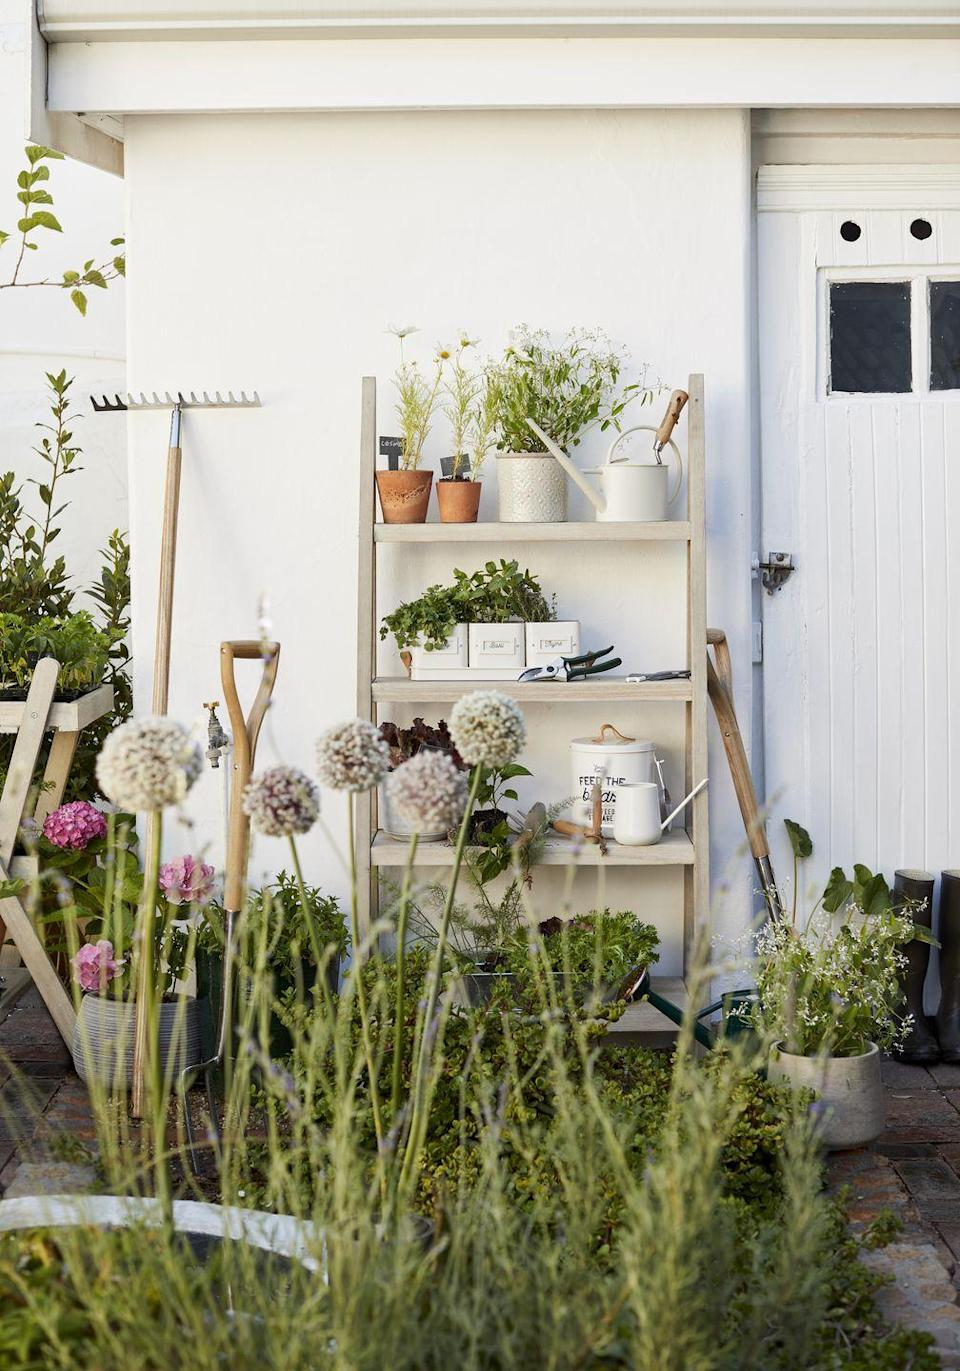 """<p>As the weather warms up, it's the ideal time to slip on your <a href=""""https://www.housebeautiful.com/uk/garden/g31246169/gardening-gloves/"""" rel=""""nofollow noopener"""" target=""""_blank"""" data-ylk=""""slk:gardening gloves"""" class=""""link rapid-noclick-resp"""">gardening gloves</a> and tend to your outdoor space. Designed with four shelves of varying depths, this ladder-style shelving unit is ideal for neatly displaying pots, plants and garden accessories.</p><p><a class=""""link rapid-noclick-resp"""" href=""""https://go.redirectingat.com?id=127X1599956&url=https%3A%2F%2Fwww.johnlewis.com%2Fjohn-lewis-partners-burford-garden-tall-garden-shelf-ladder-fsc-certified-eucalyptus-wood%2Fp3809267&sref=https%3A%2F%2Fwww.housebeautiful.com%2Fuk%2Flifestyle%2Fg35954786%2Fjohn-lewis-garden-collection-spring-summer%2F"""" rel=""""nofollow noopener"""" target=""""_blank"""" data-ylk=""""slk:SHOP NOW"""">SHOP NOW</a></p>"""